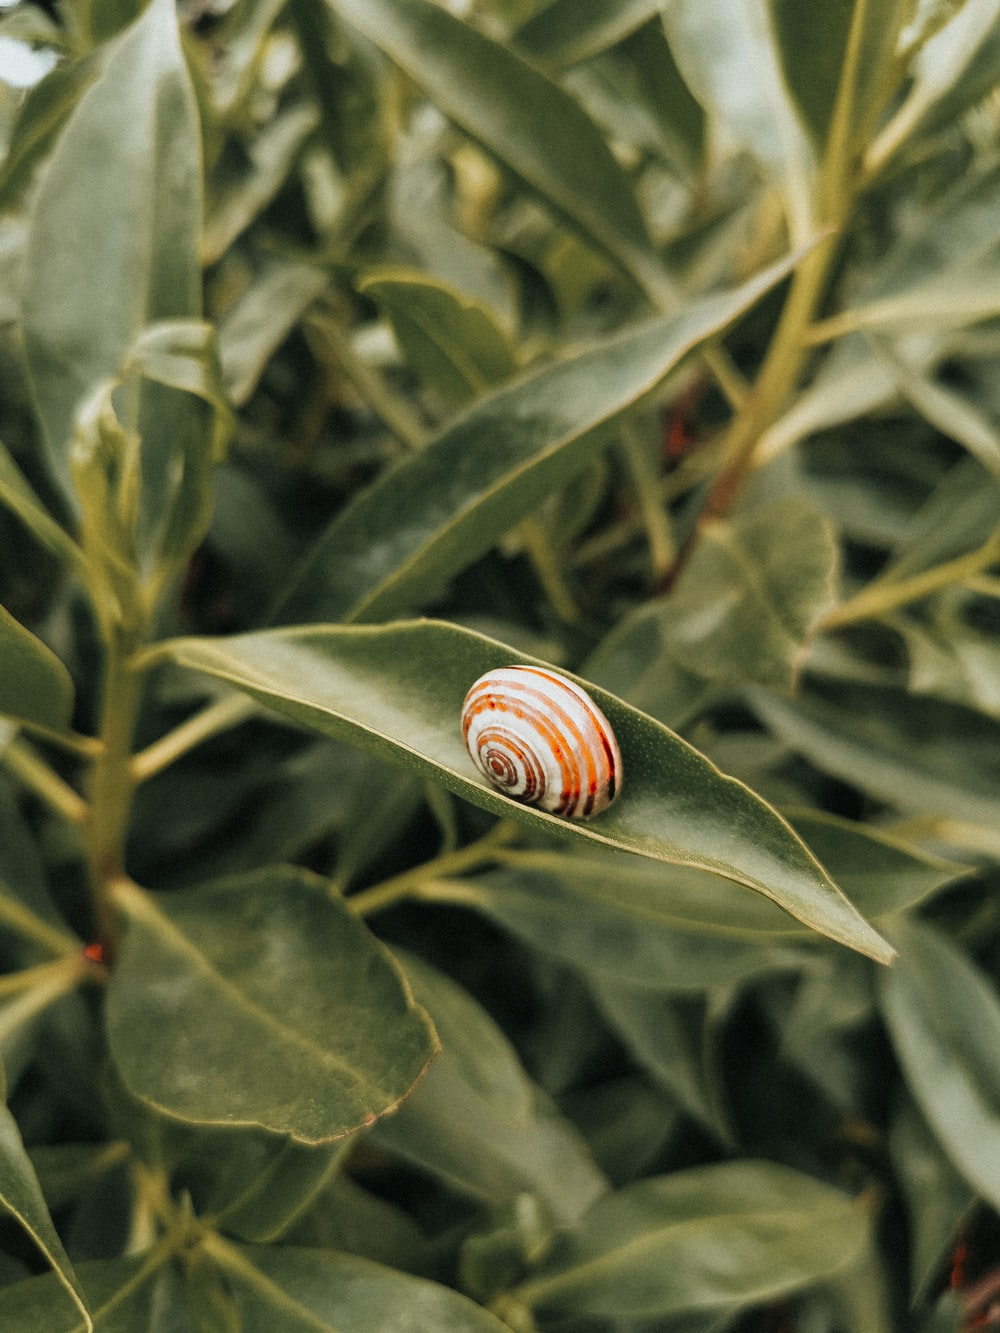 brown and white snail